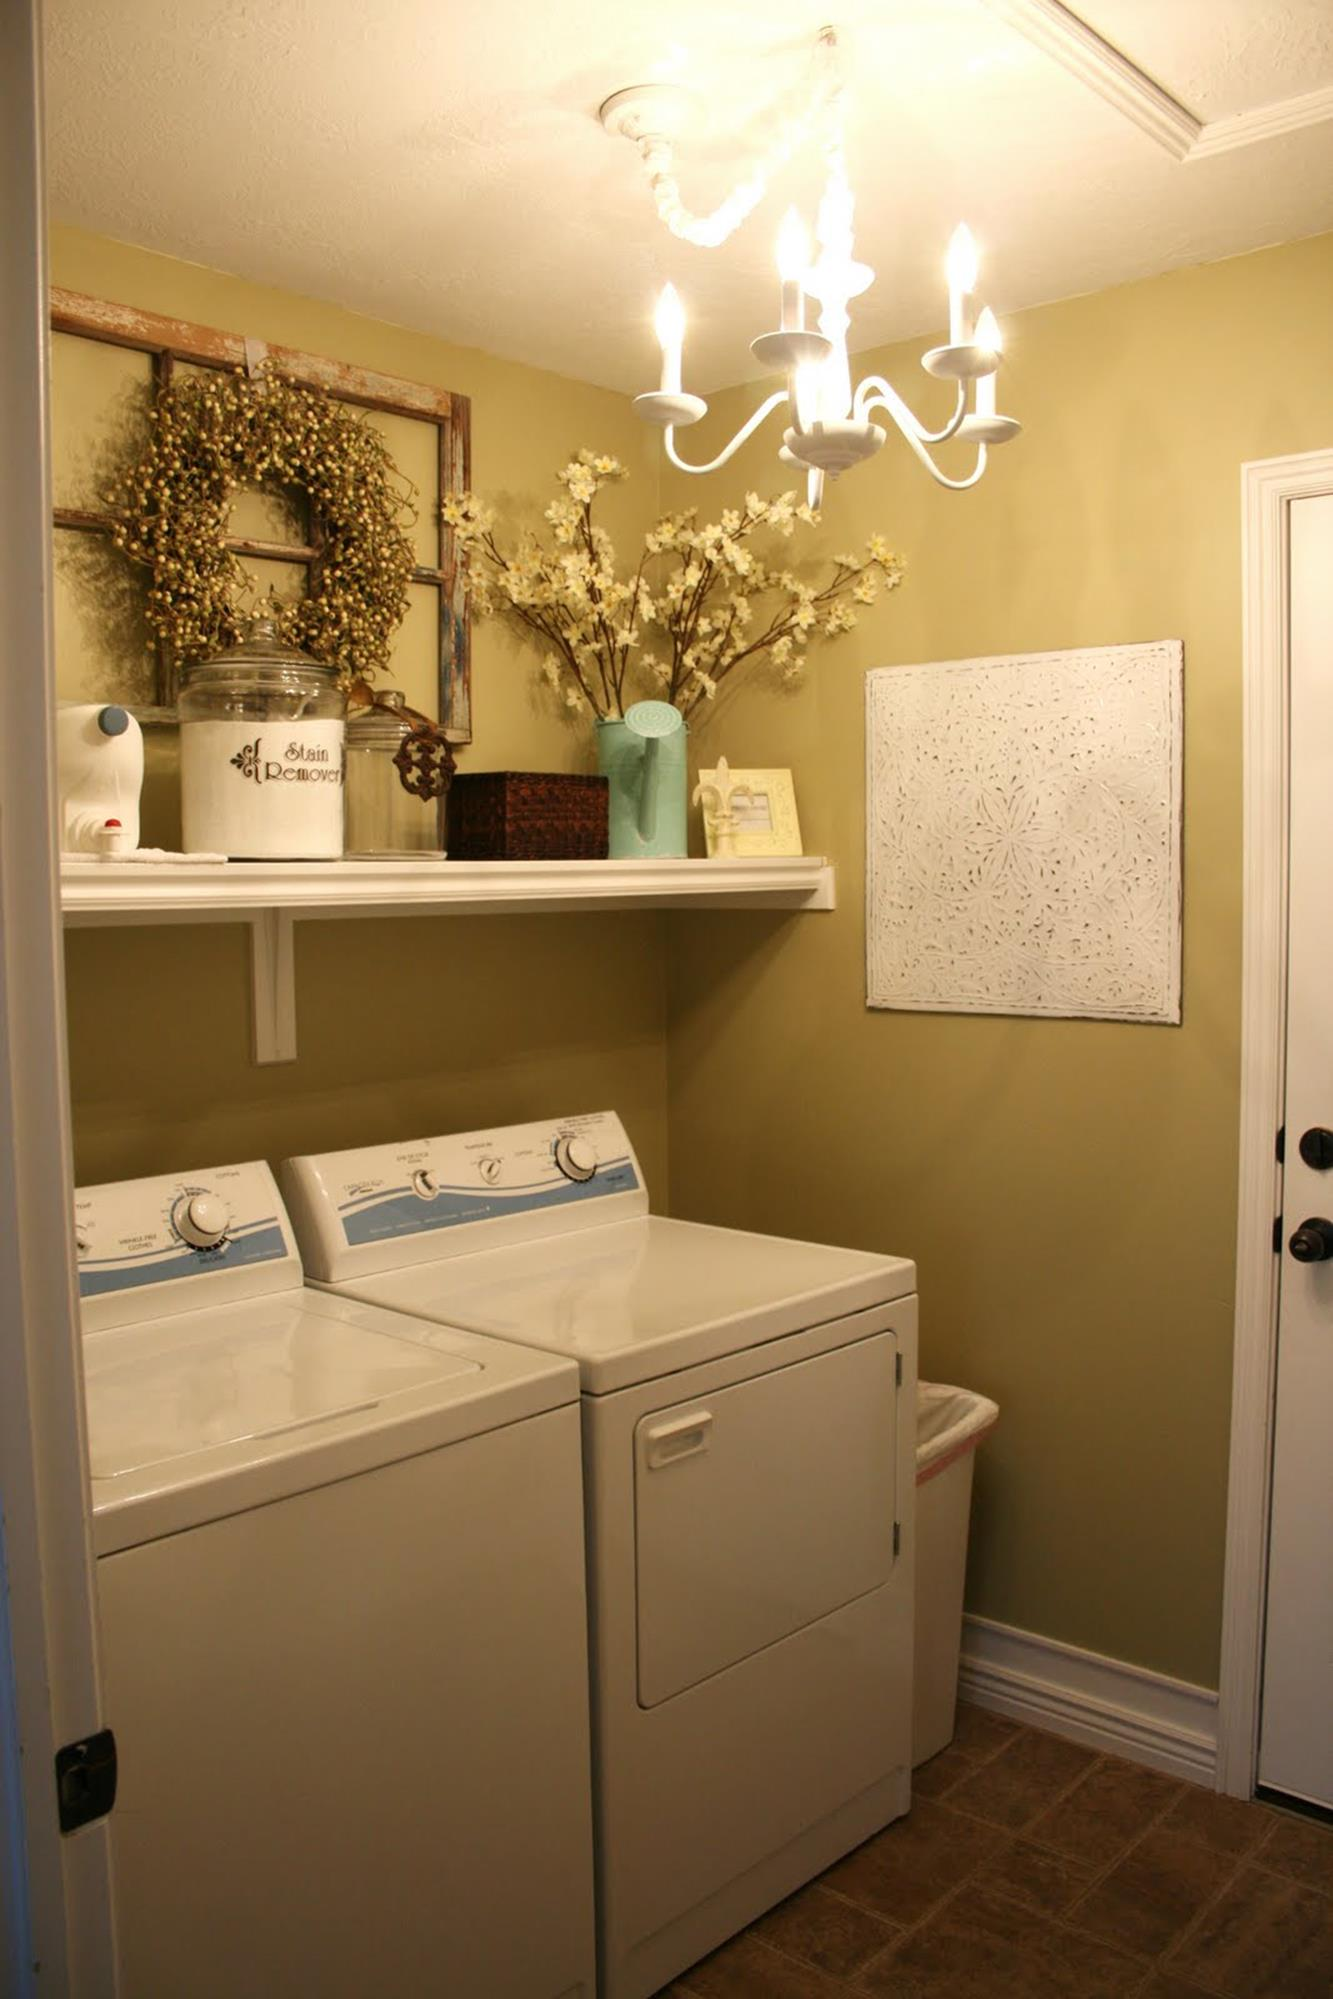 37 Charming Laundry Room Decorating Ideas Wall Art - DecoRelated